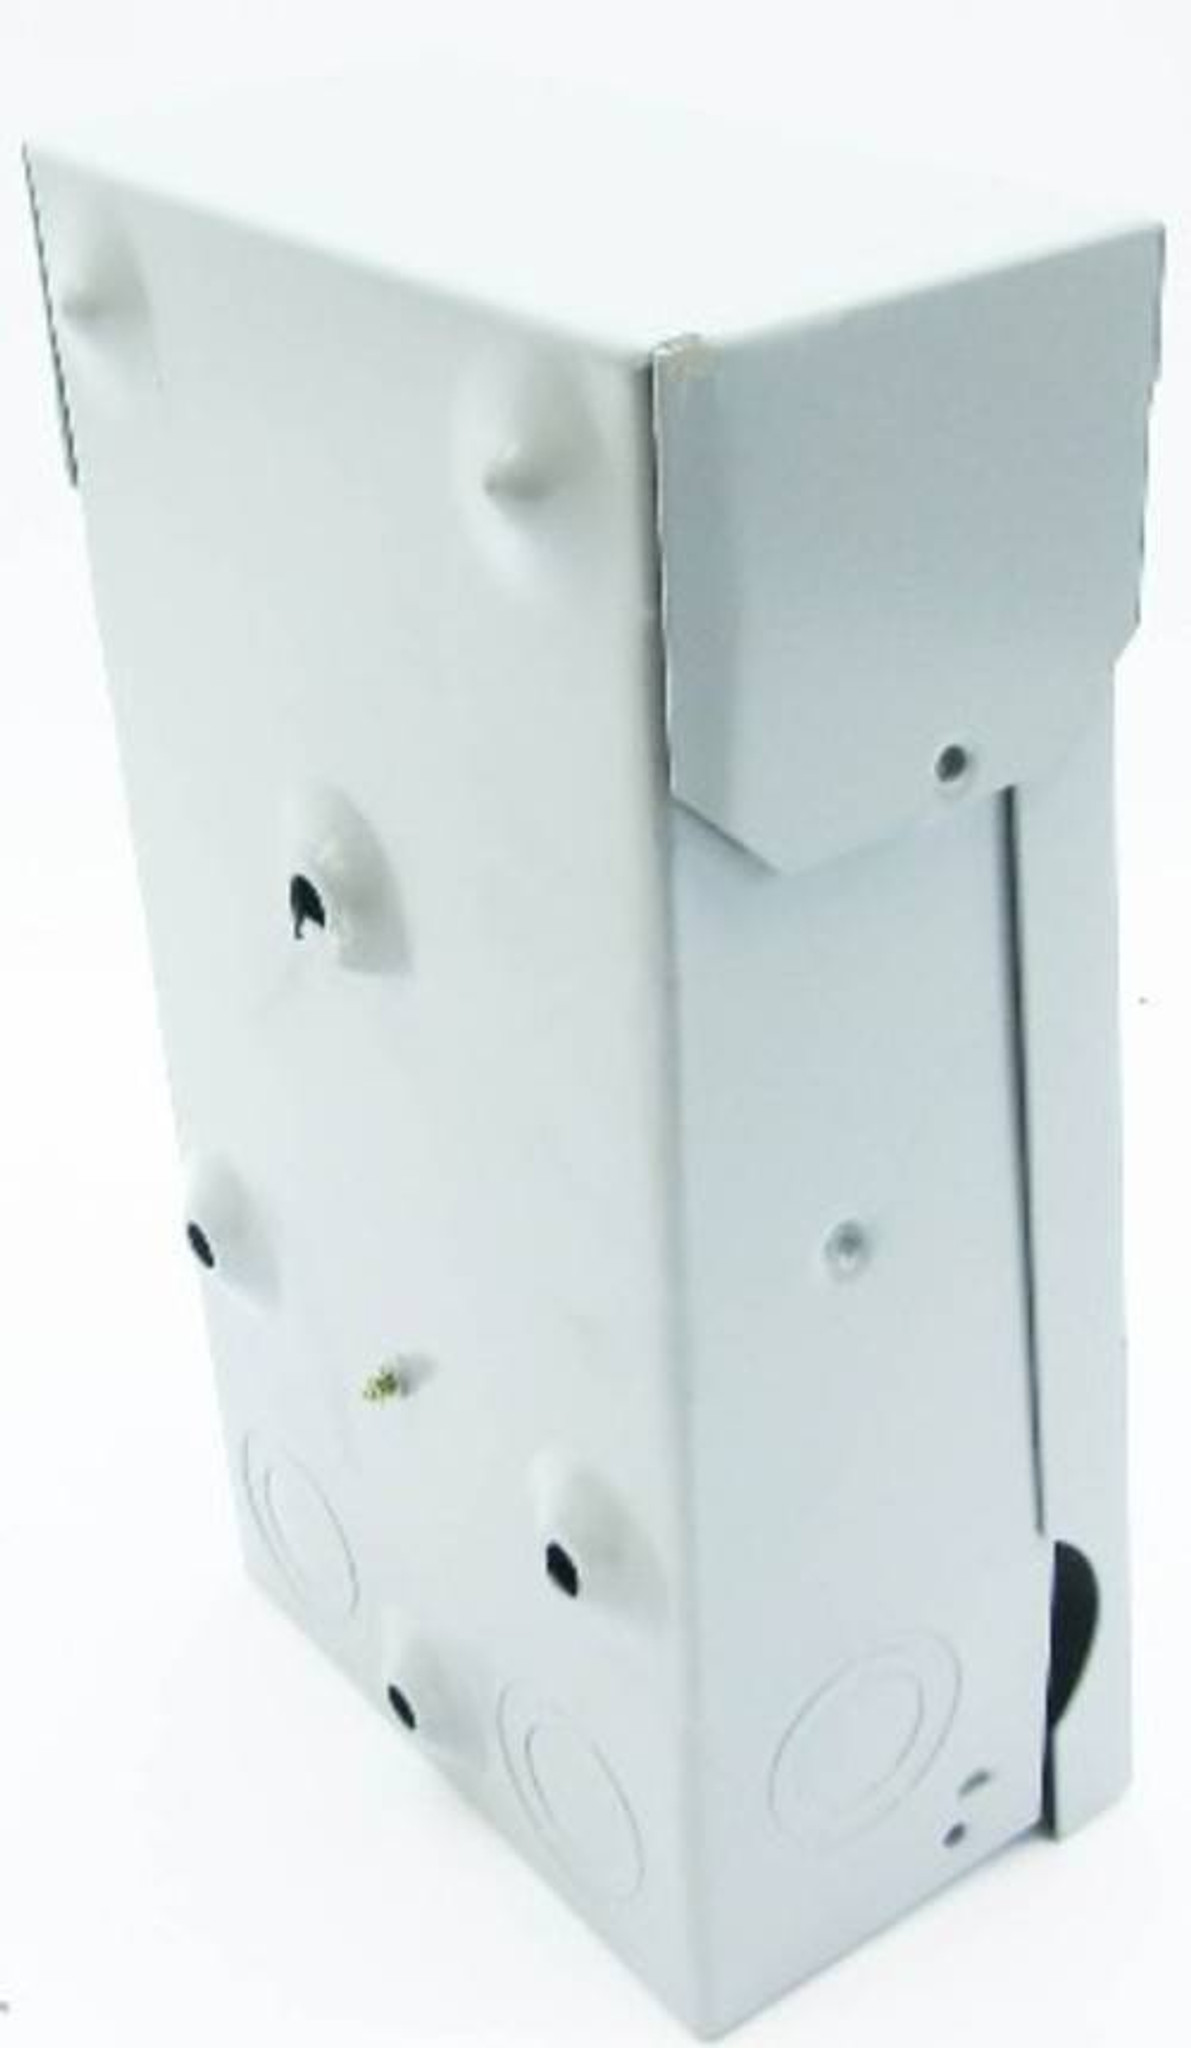 Ge General Electric Tf60r New 3r 60 Amp 240v Fused Ac Disconnect New No Box  Yy1168-50